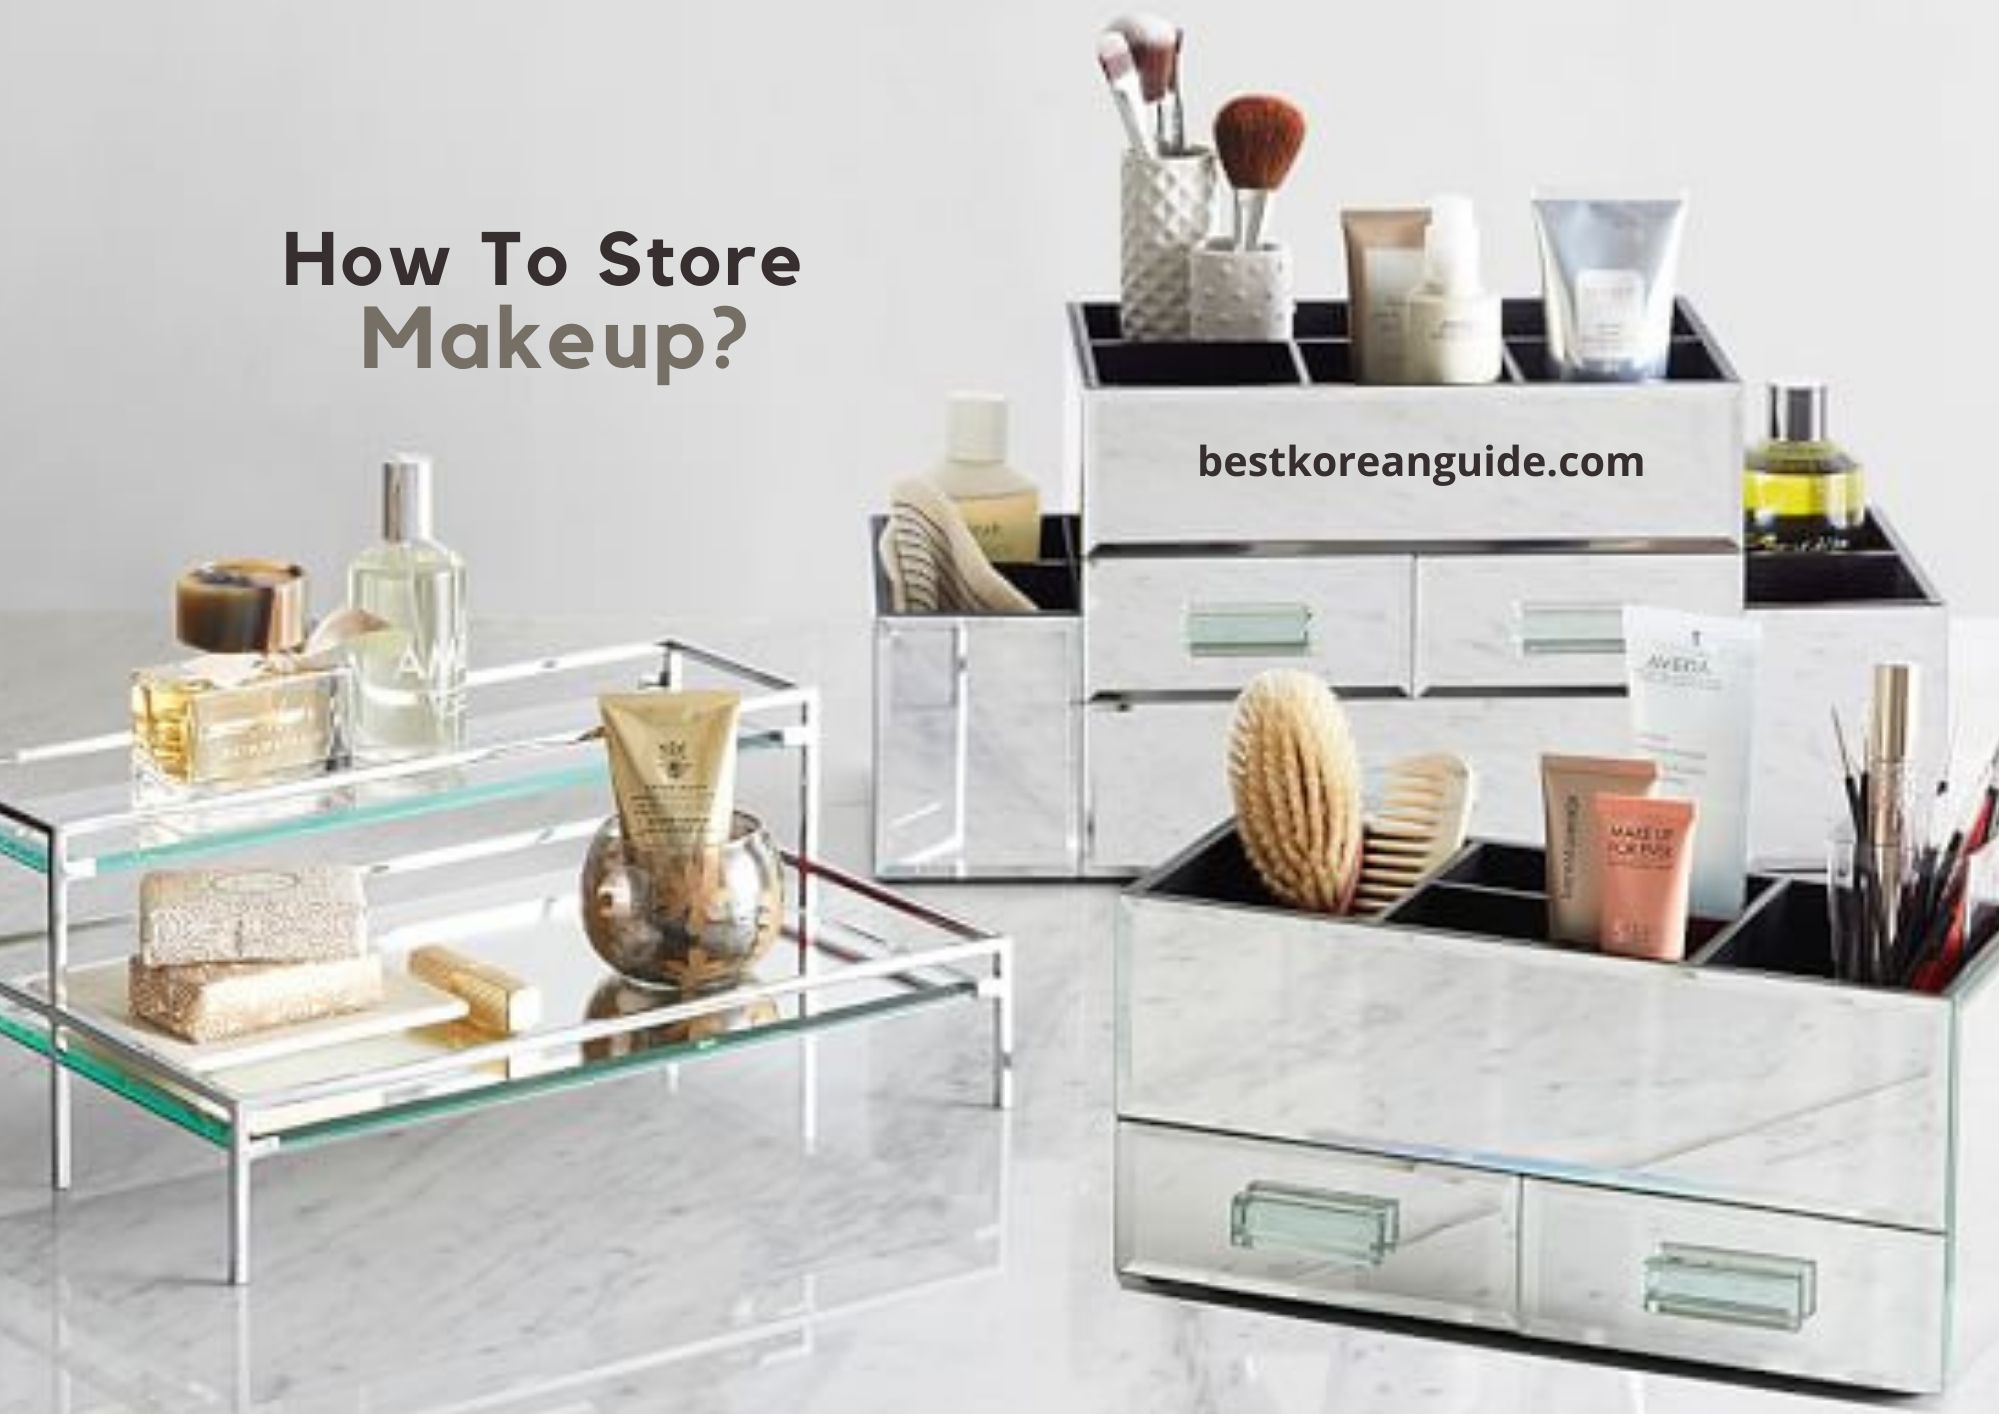 How To Store Makeup?